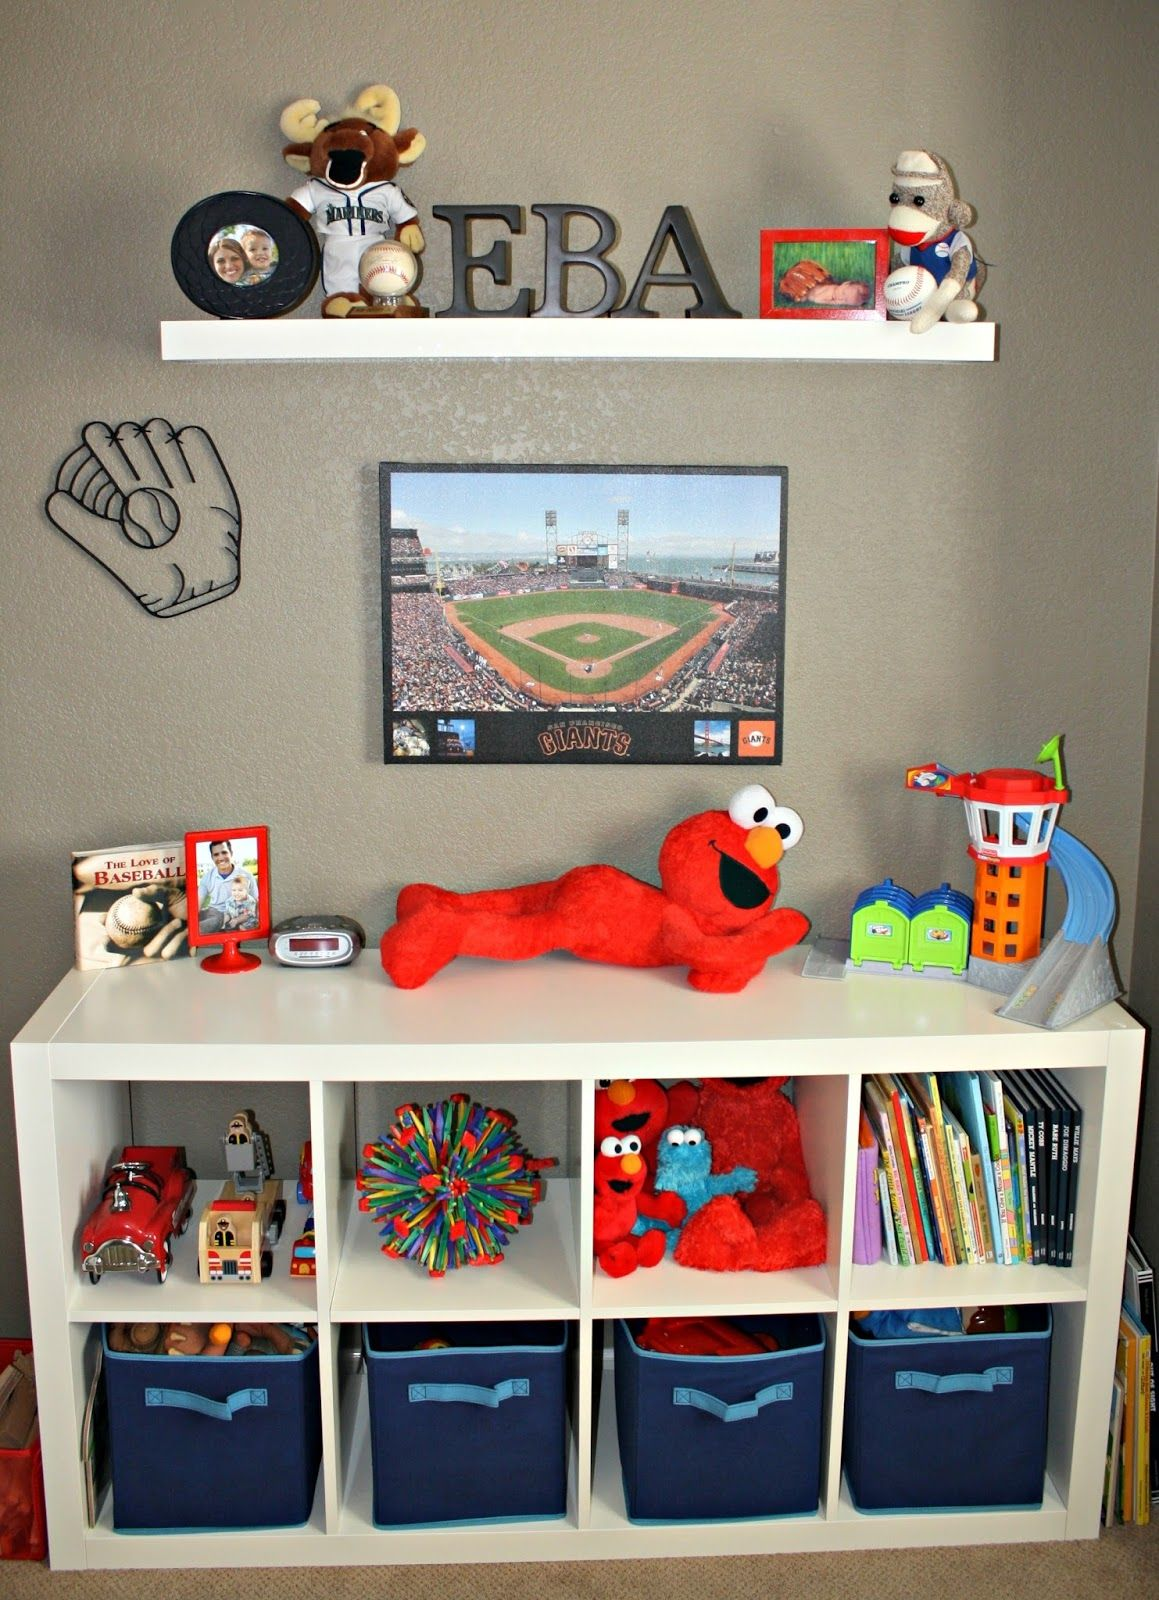 Love The Shelving May Try This For Another Room In The House To